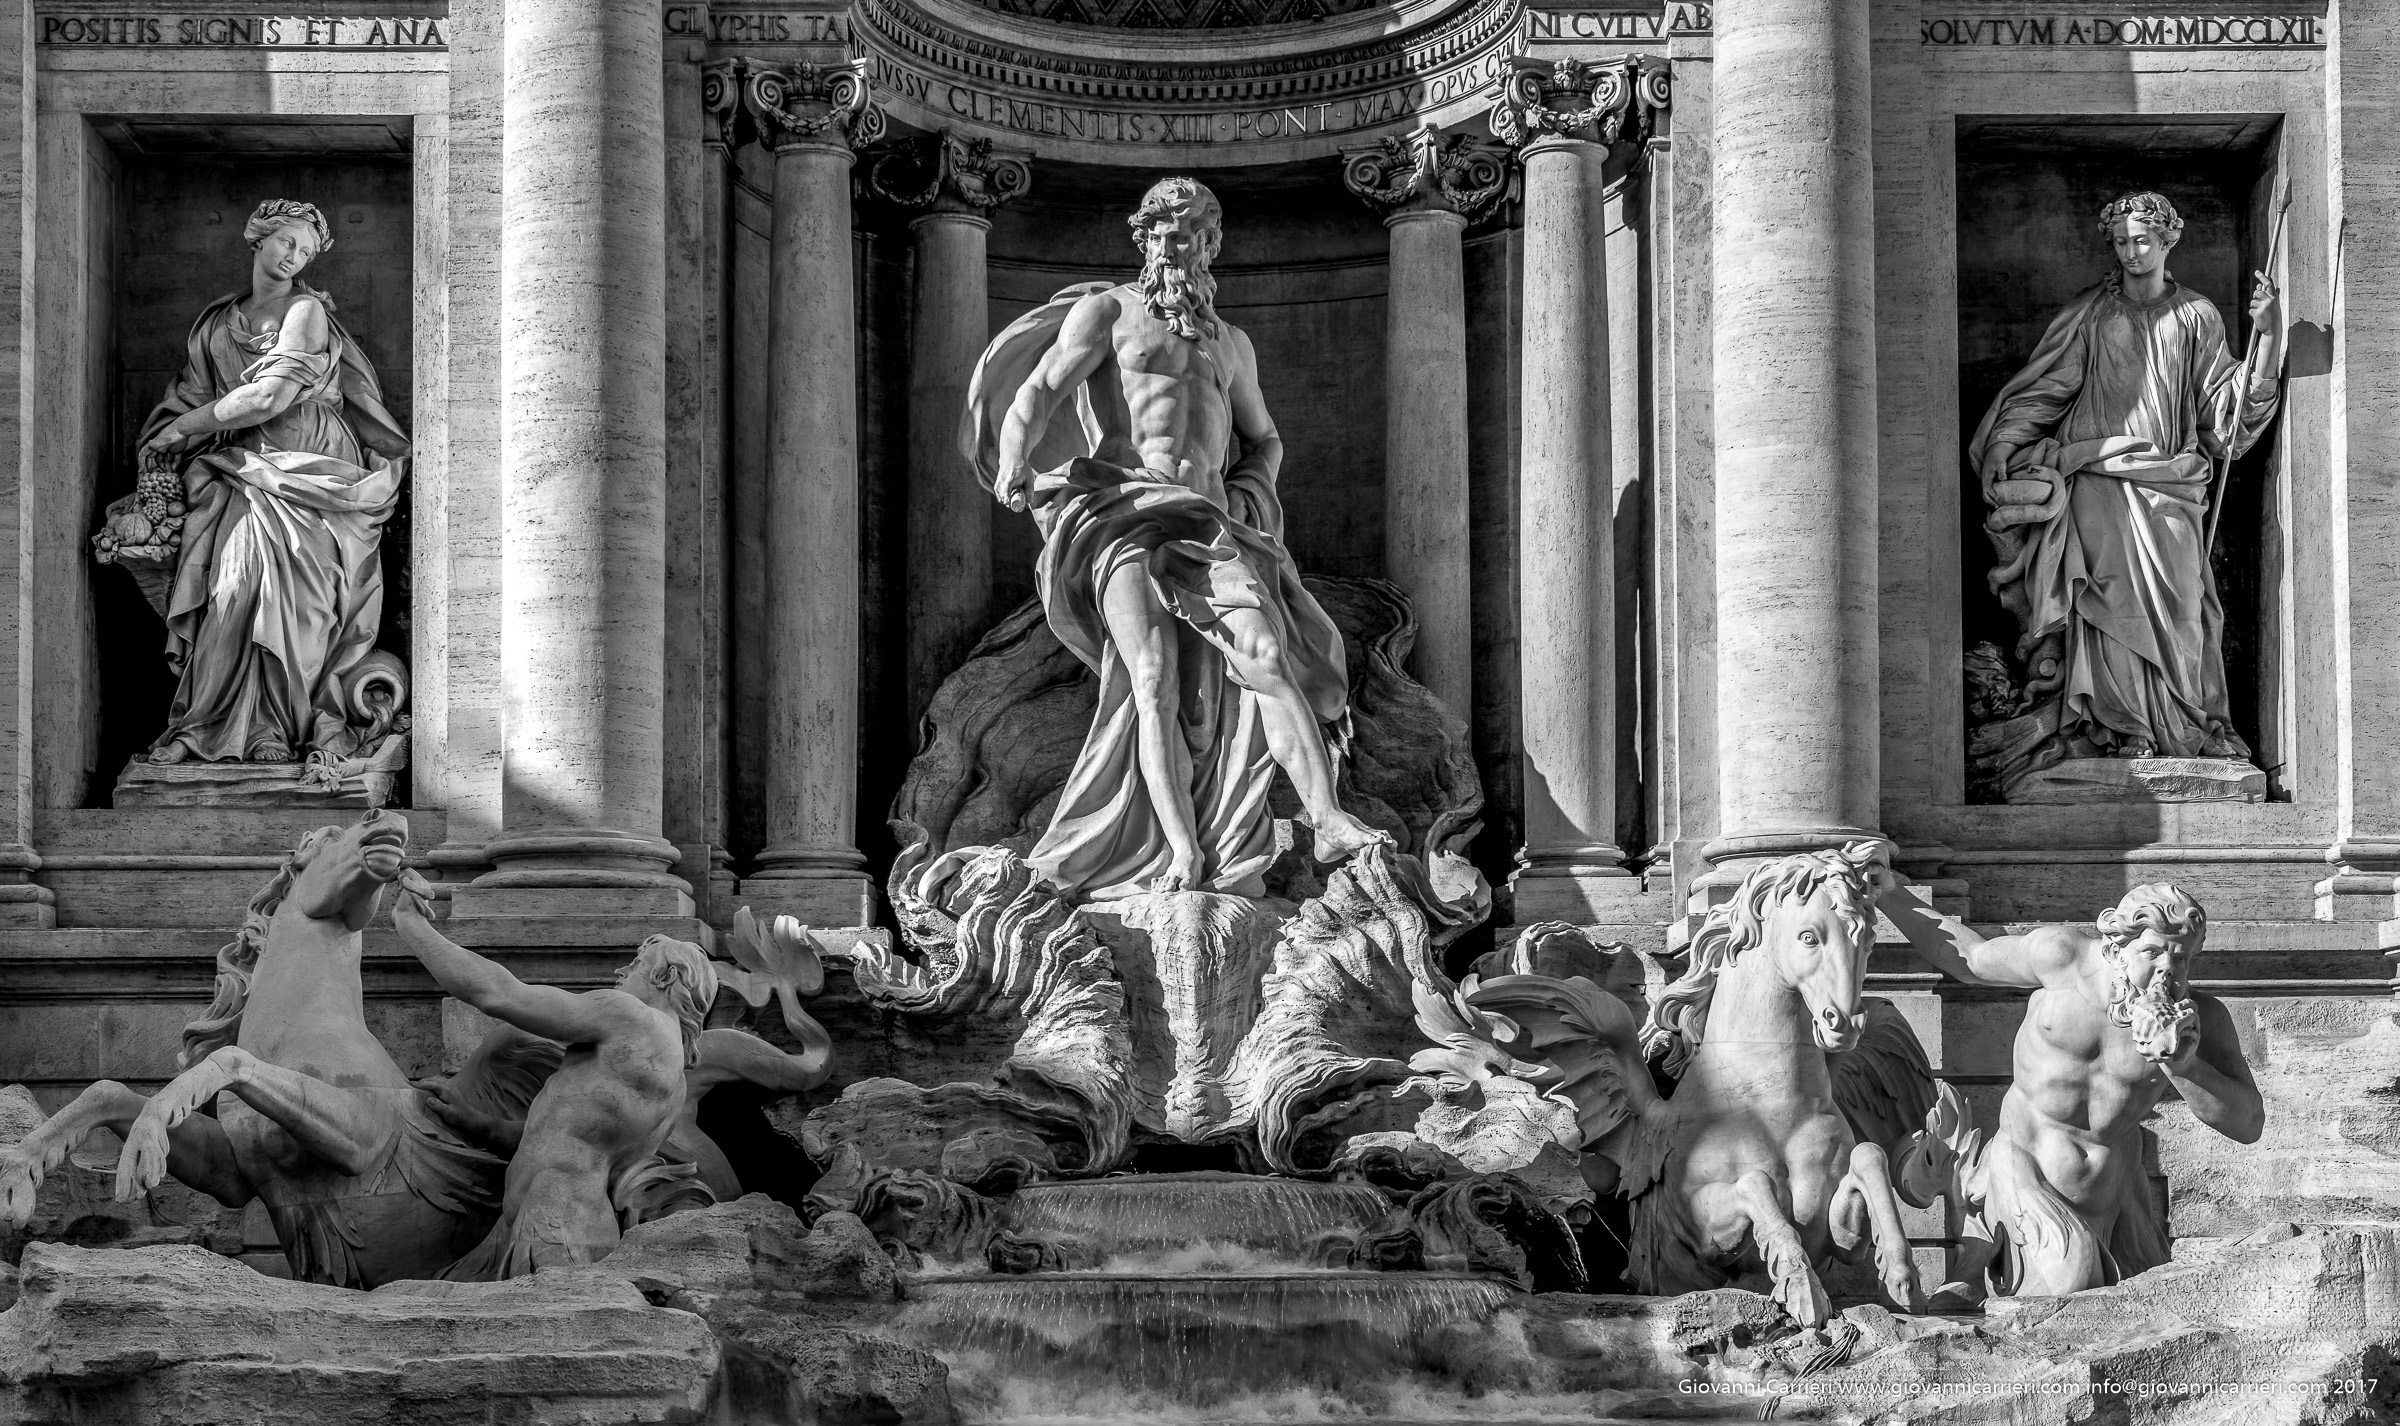 Photographs of Rome